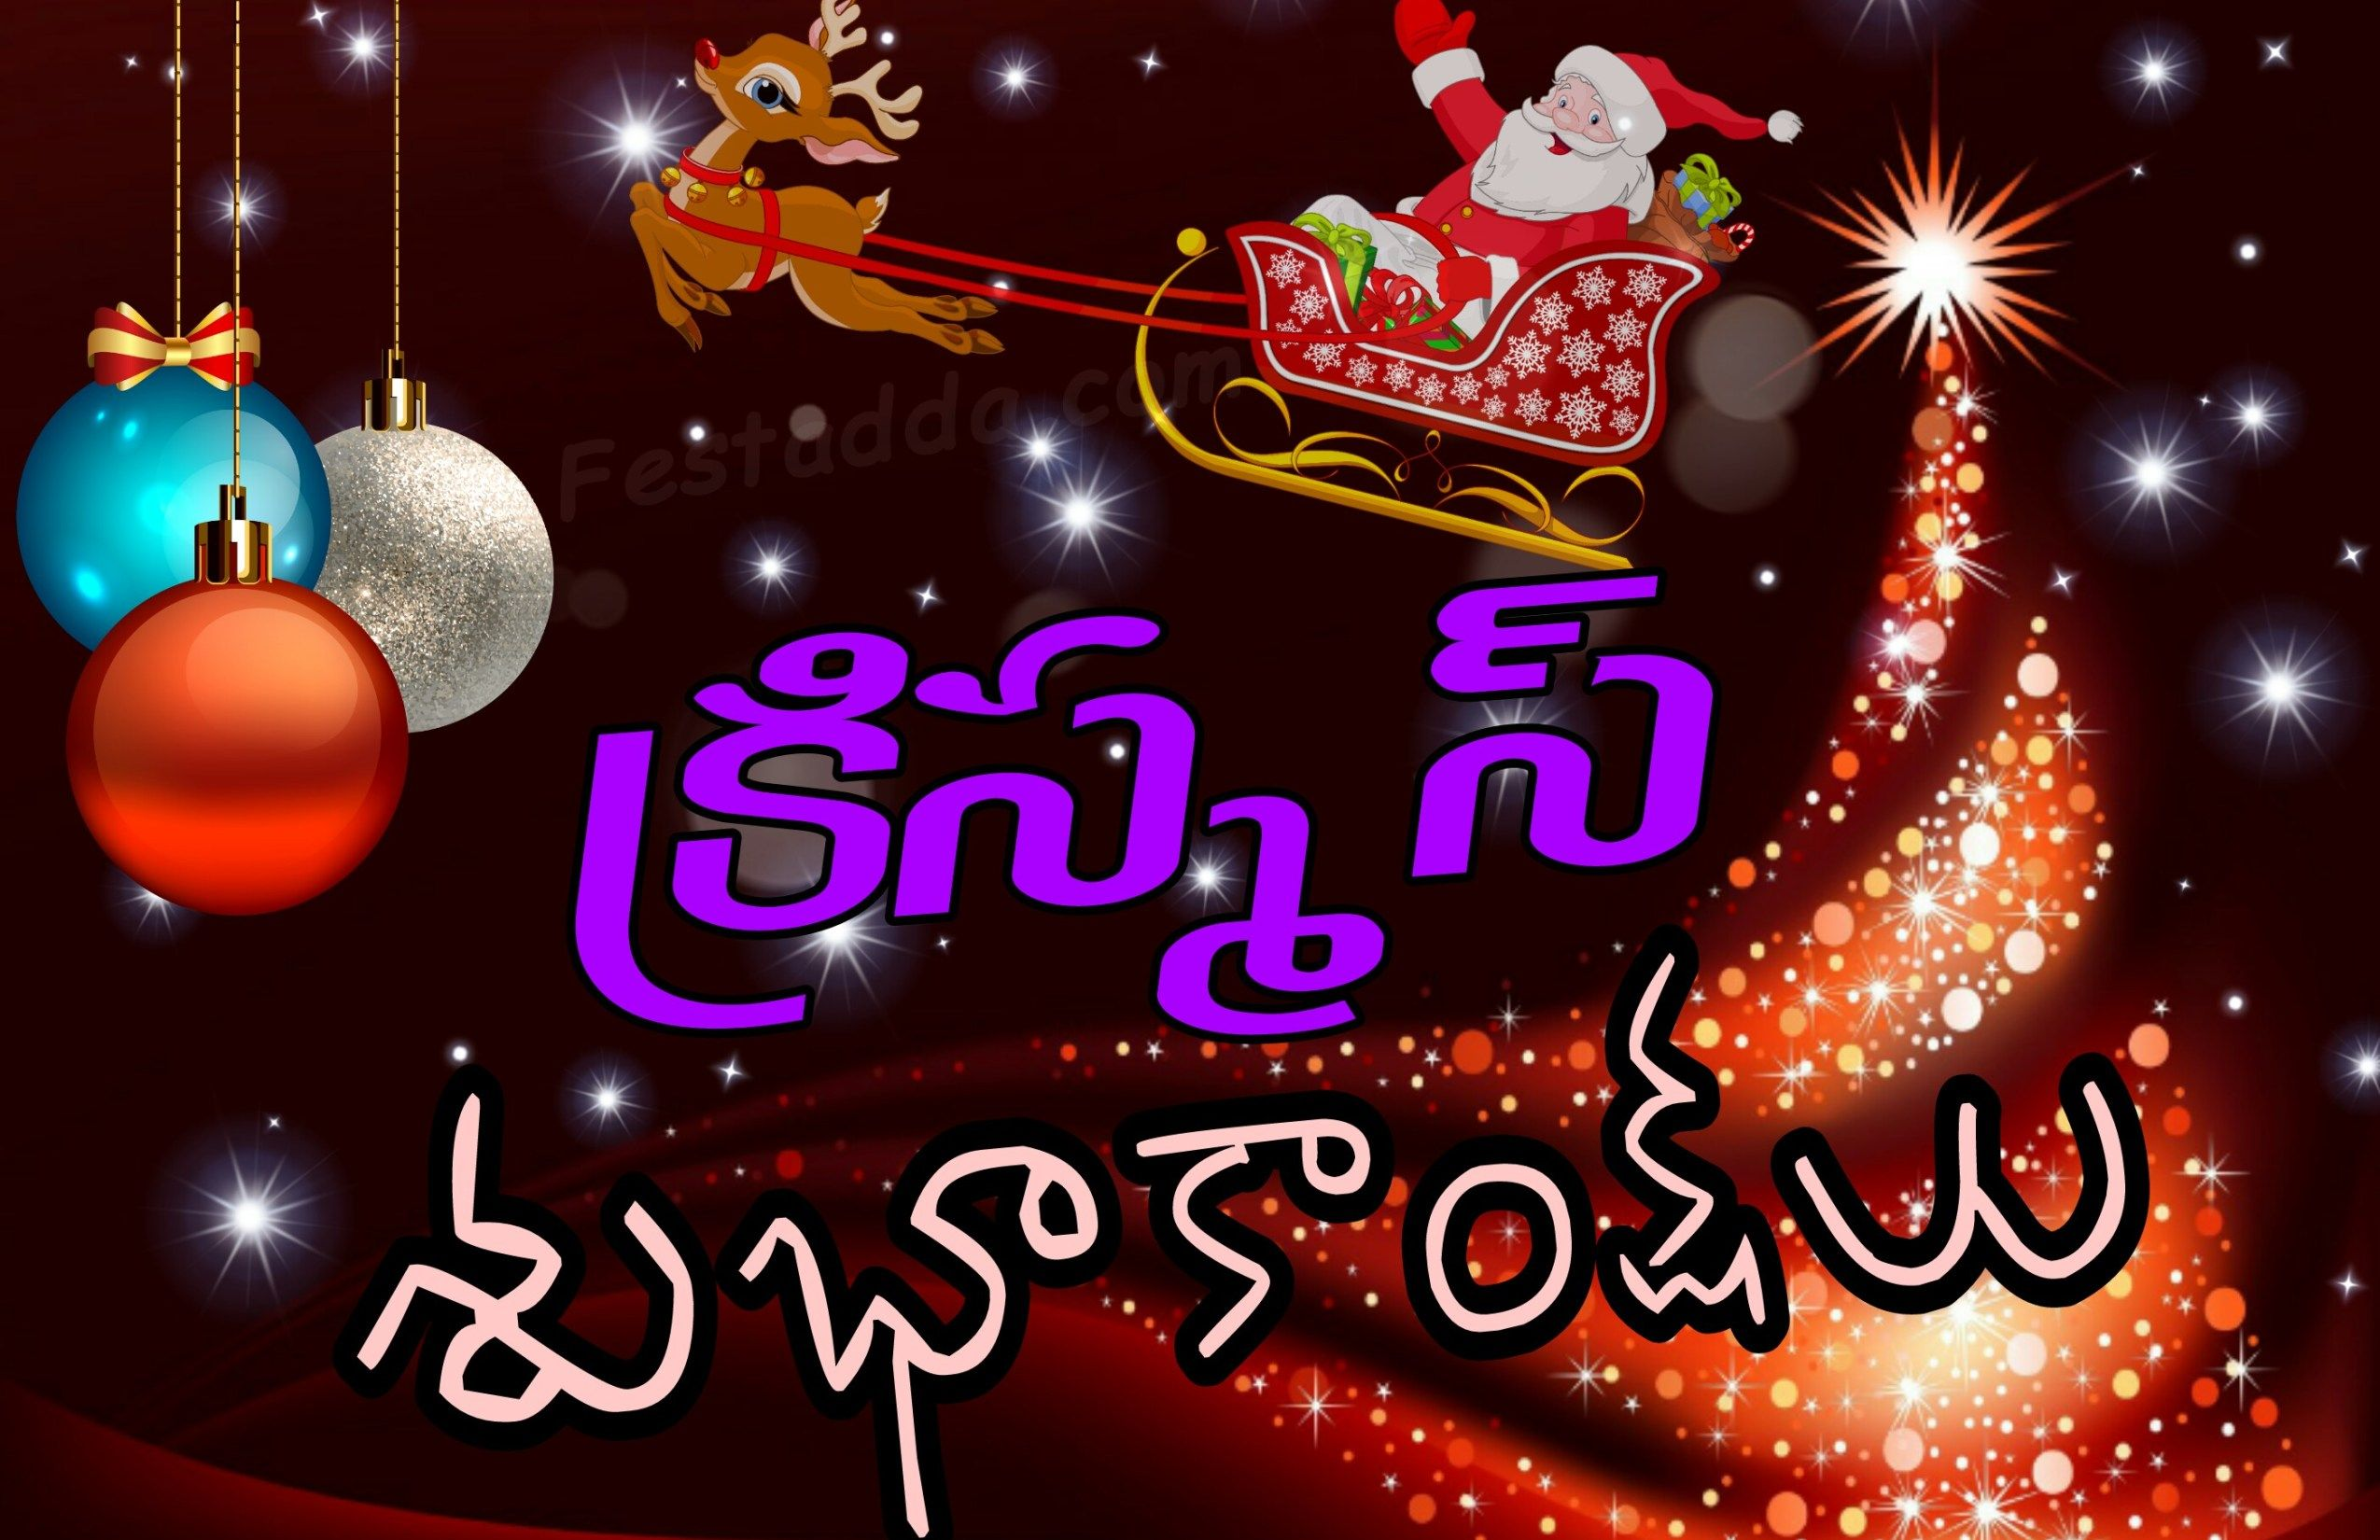 Merry Christmas Wishes 2019 Images క ర స మస శ భ క క షల చ త ర ల Merry Christmas Wishes Christmas Bulbs Christmas Wishes